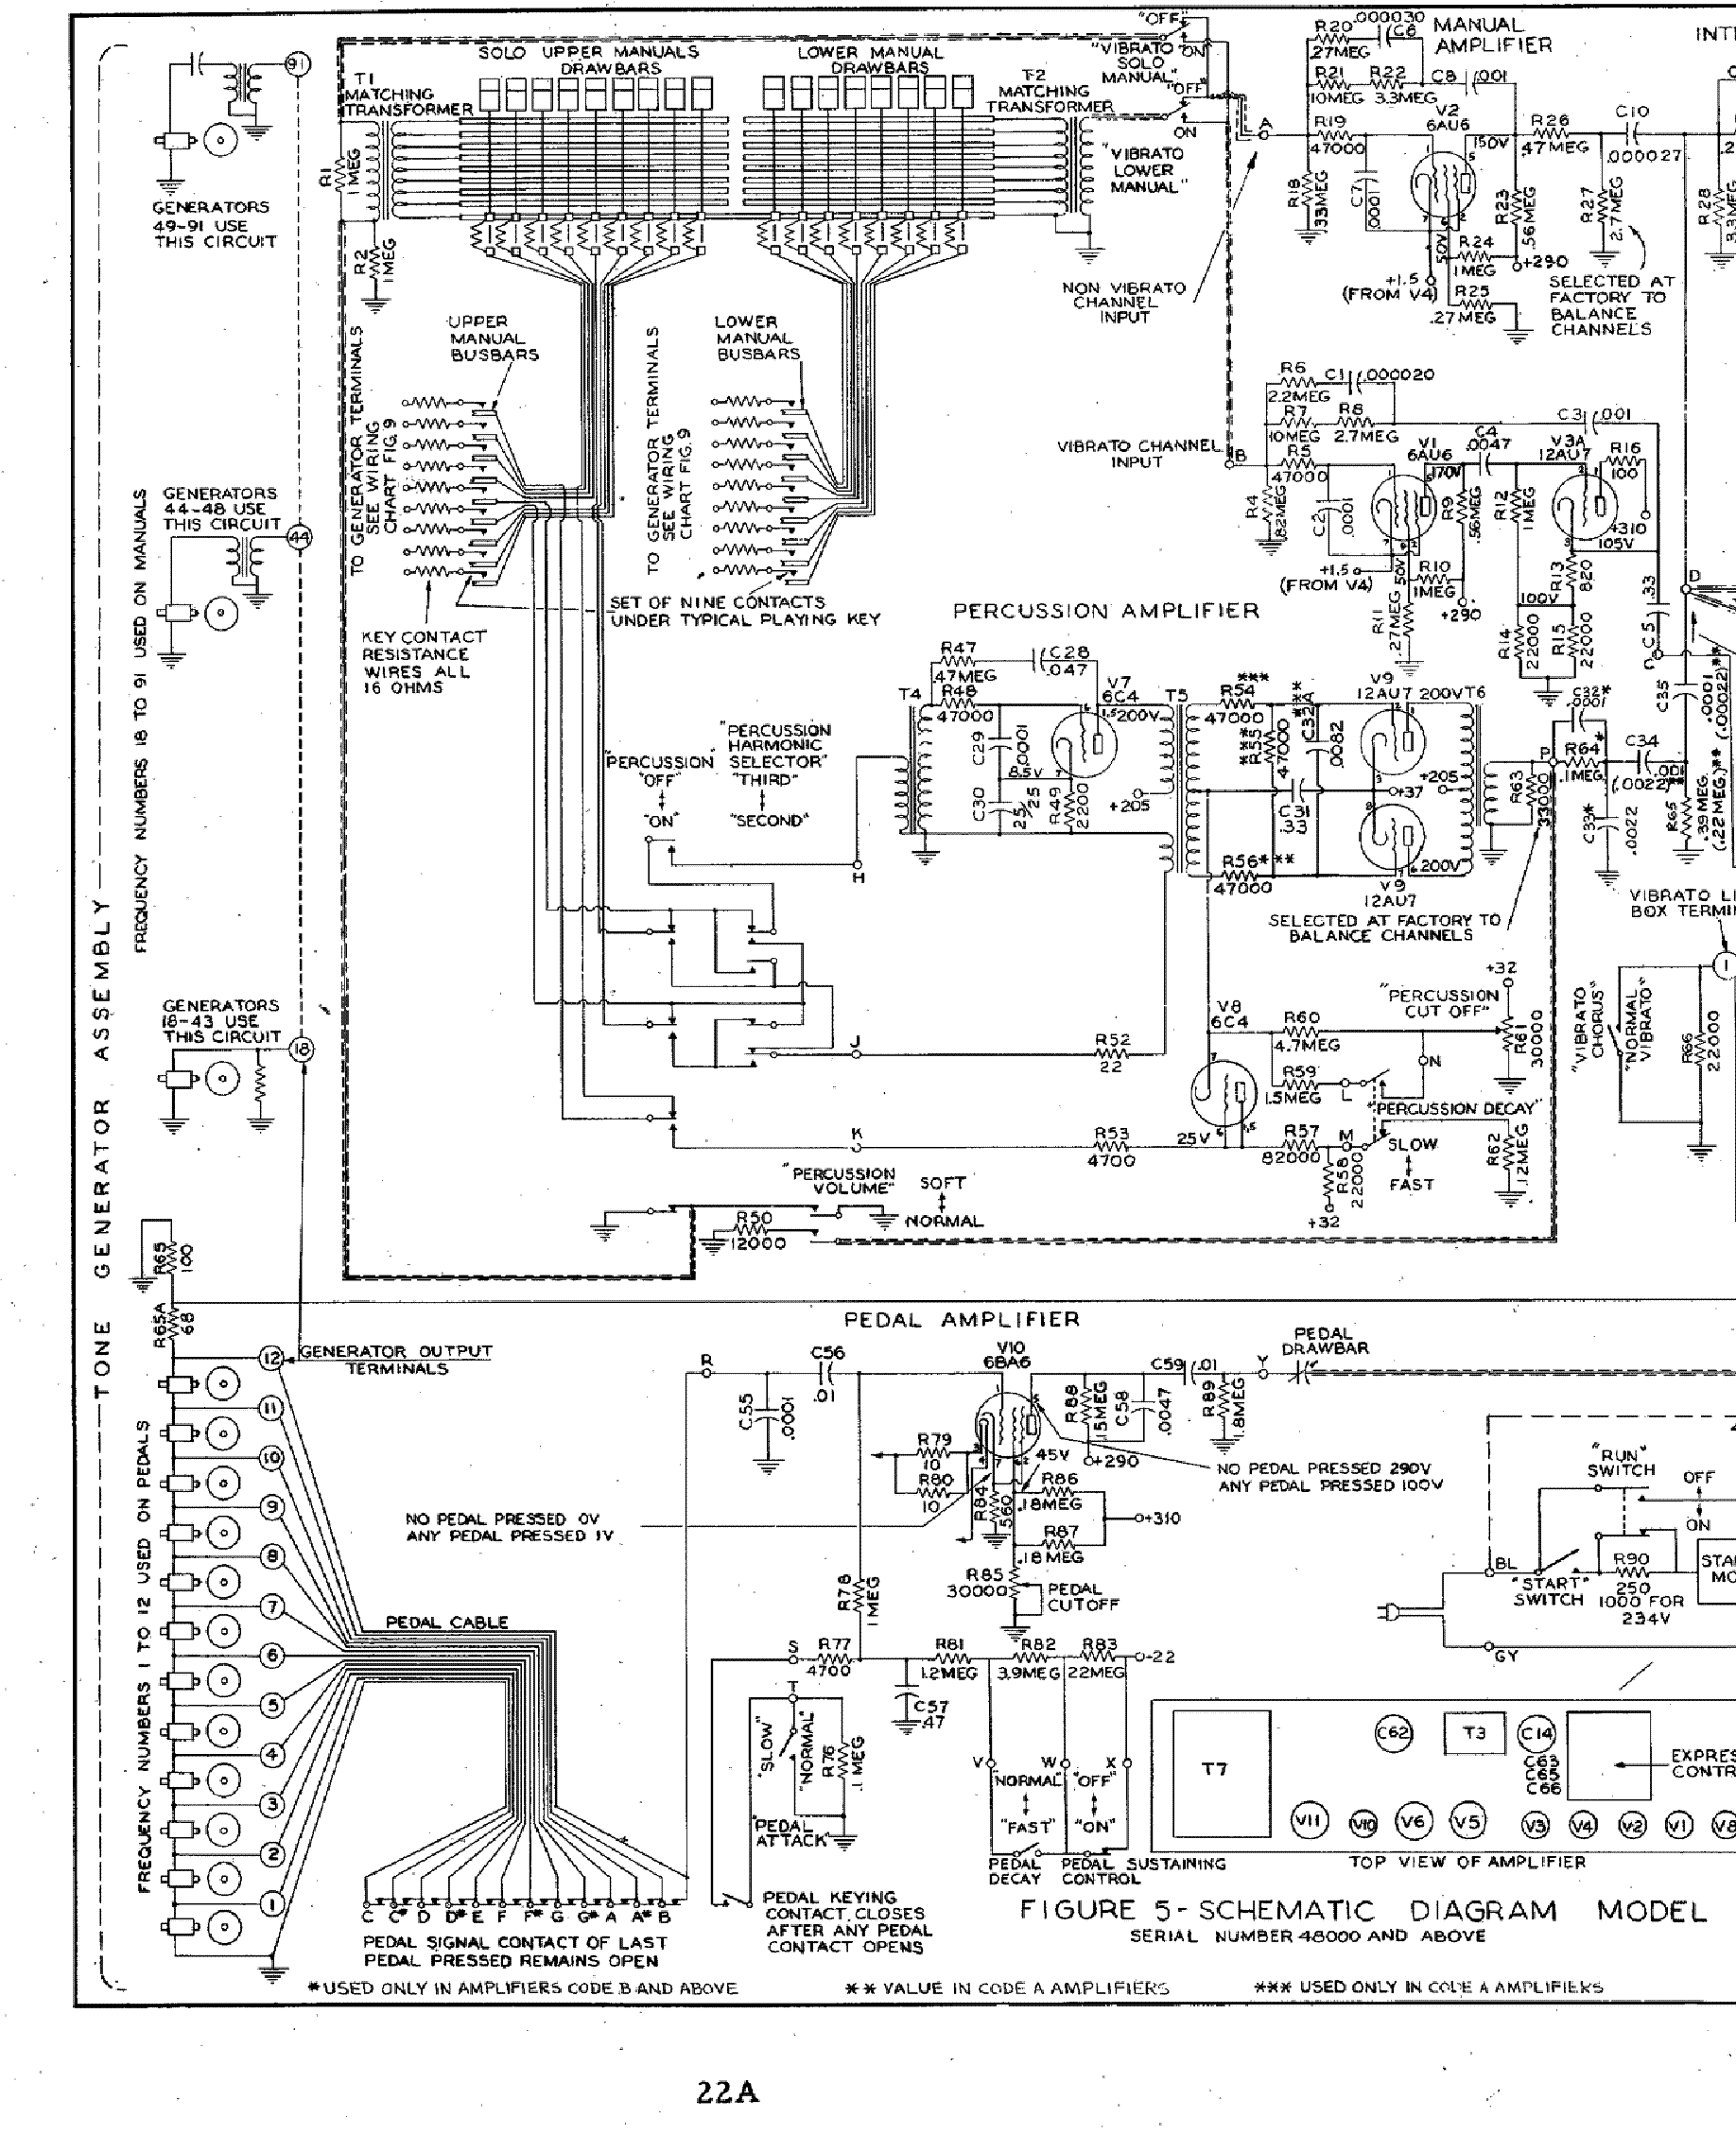 HAMMOND M-3 SCH Service Manual download, schematics